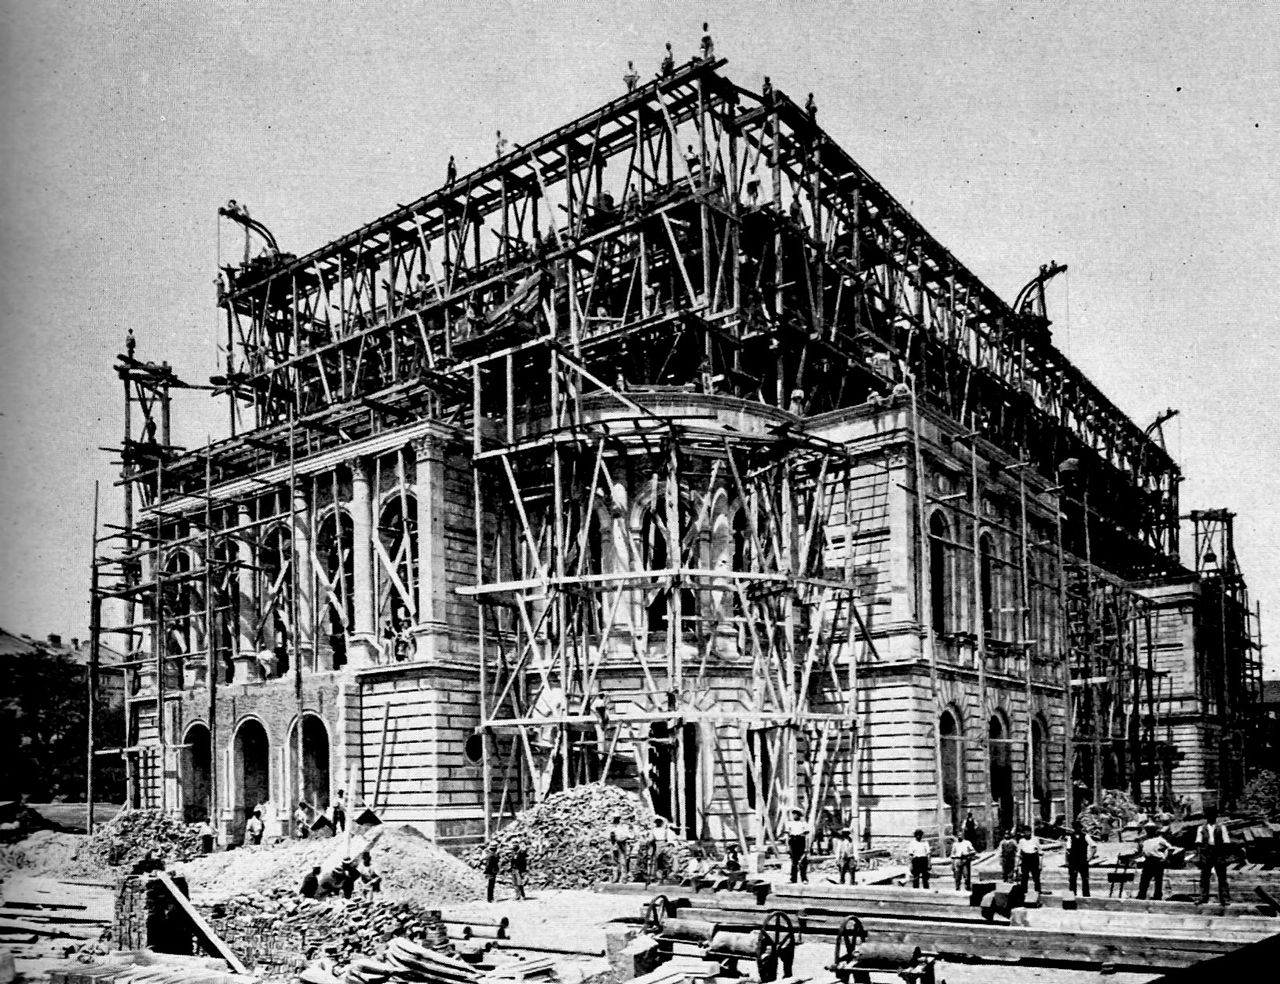 Baufirma Frankfurt File Construction Of Opera House 1873 To 1878 In Frankfurt On The